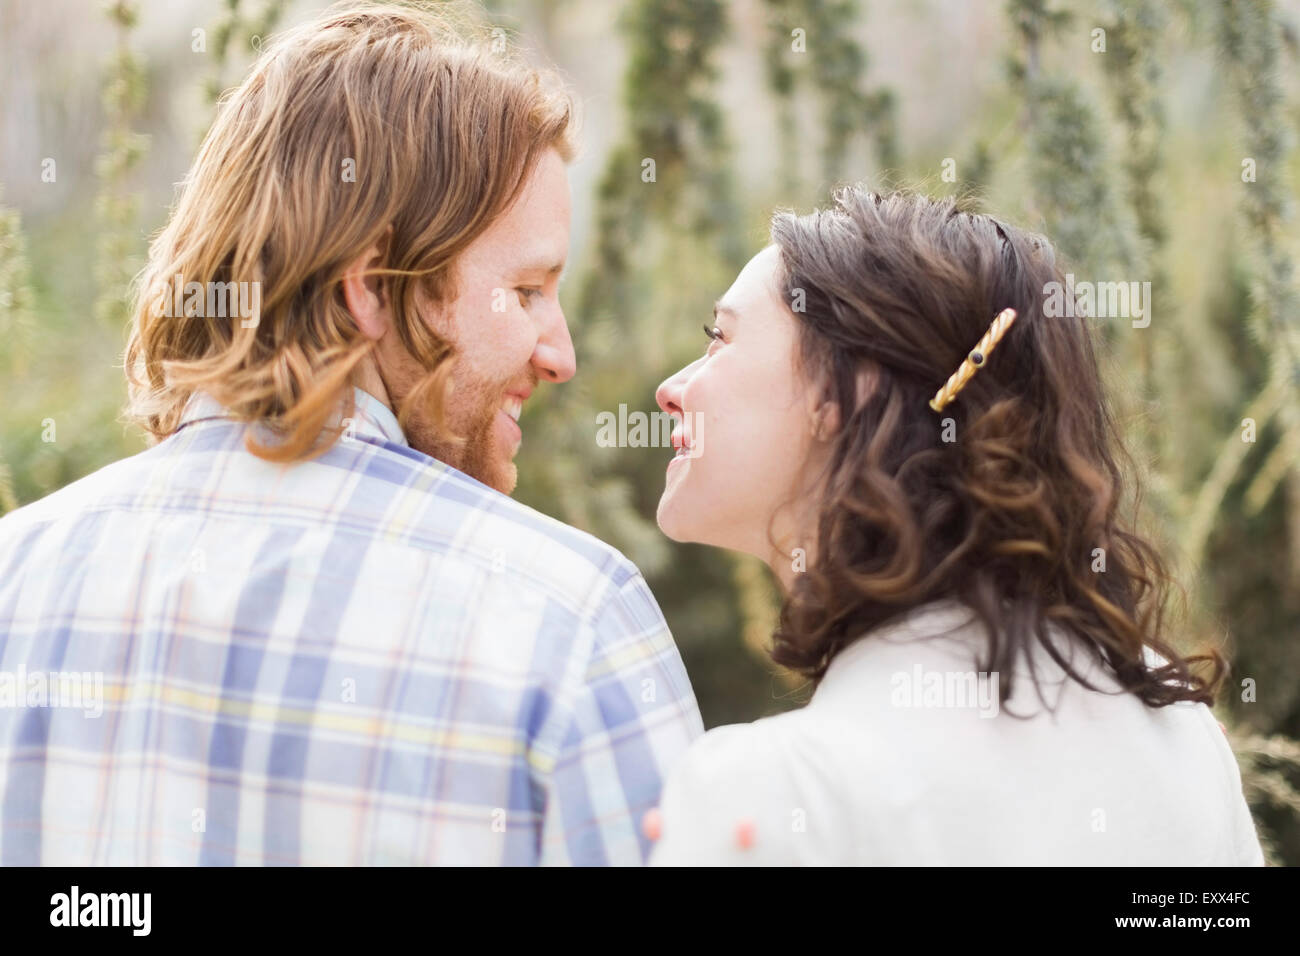 Smiling couple looking at each other - Stock Image